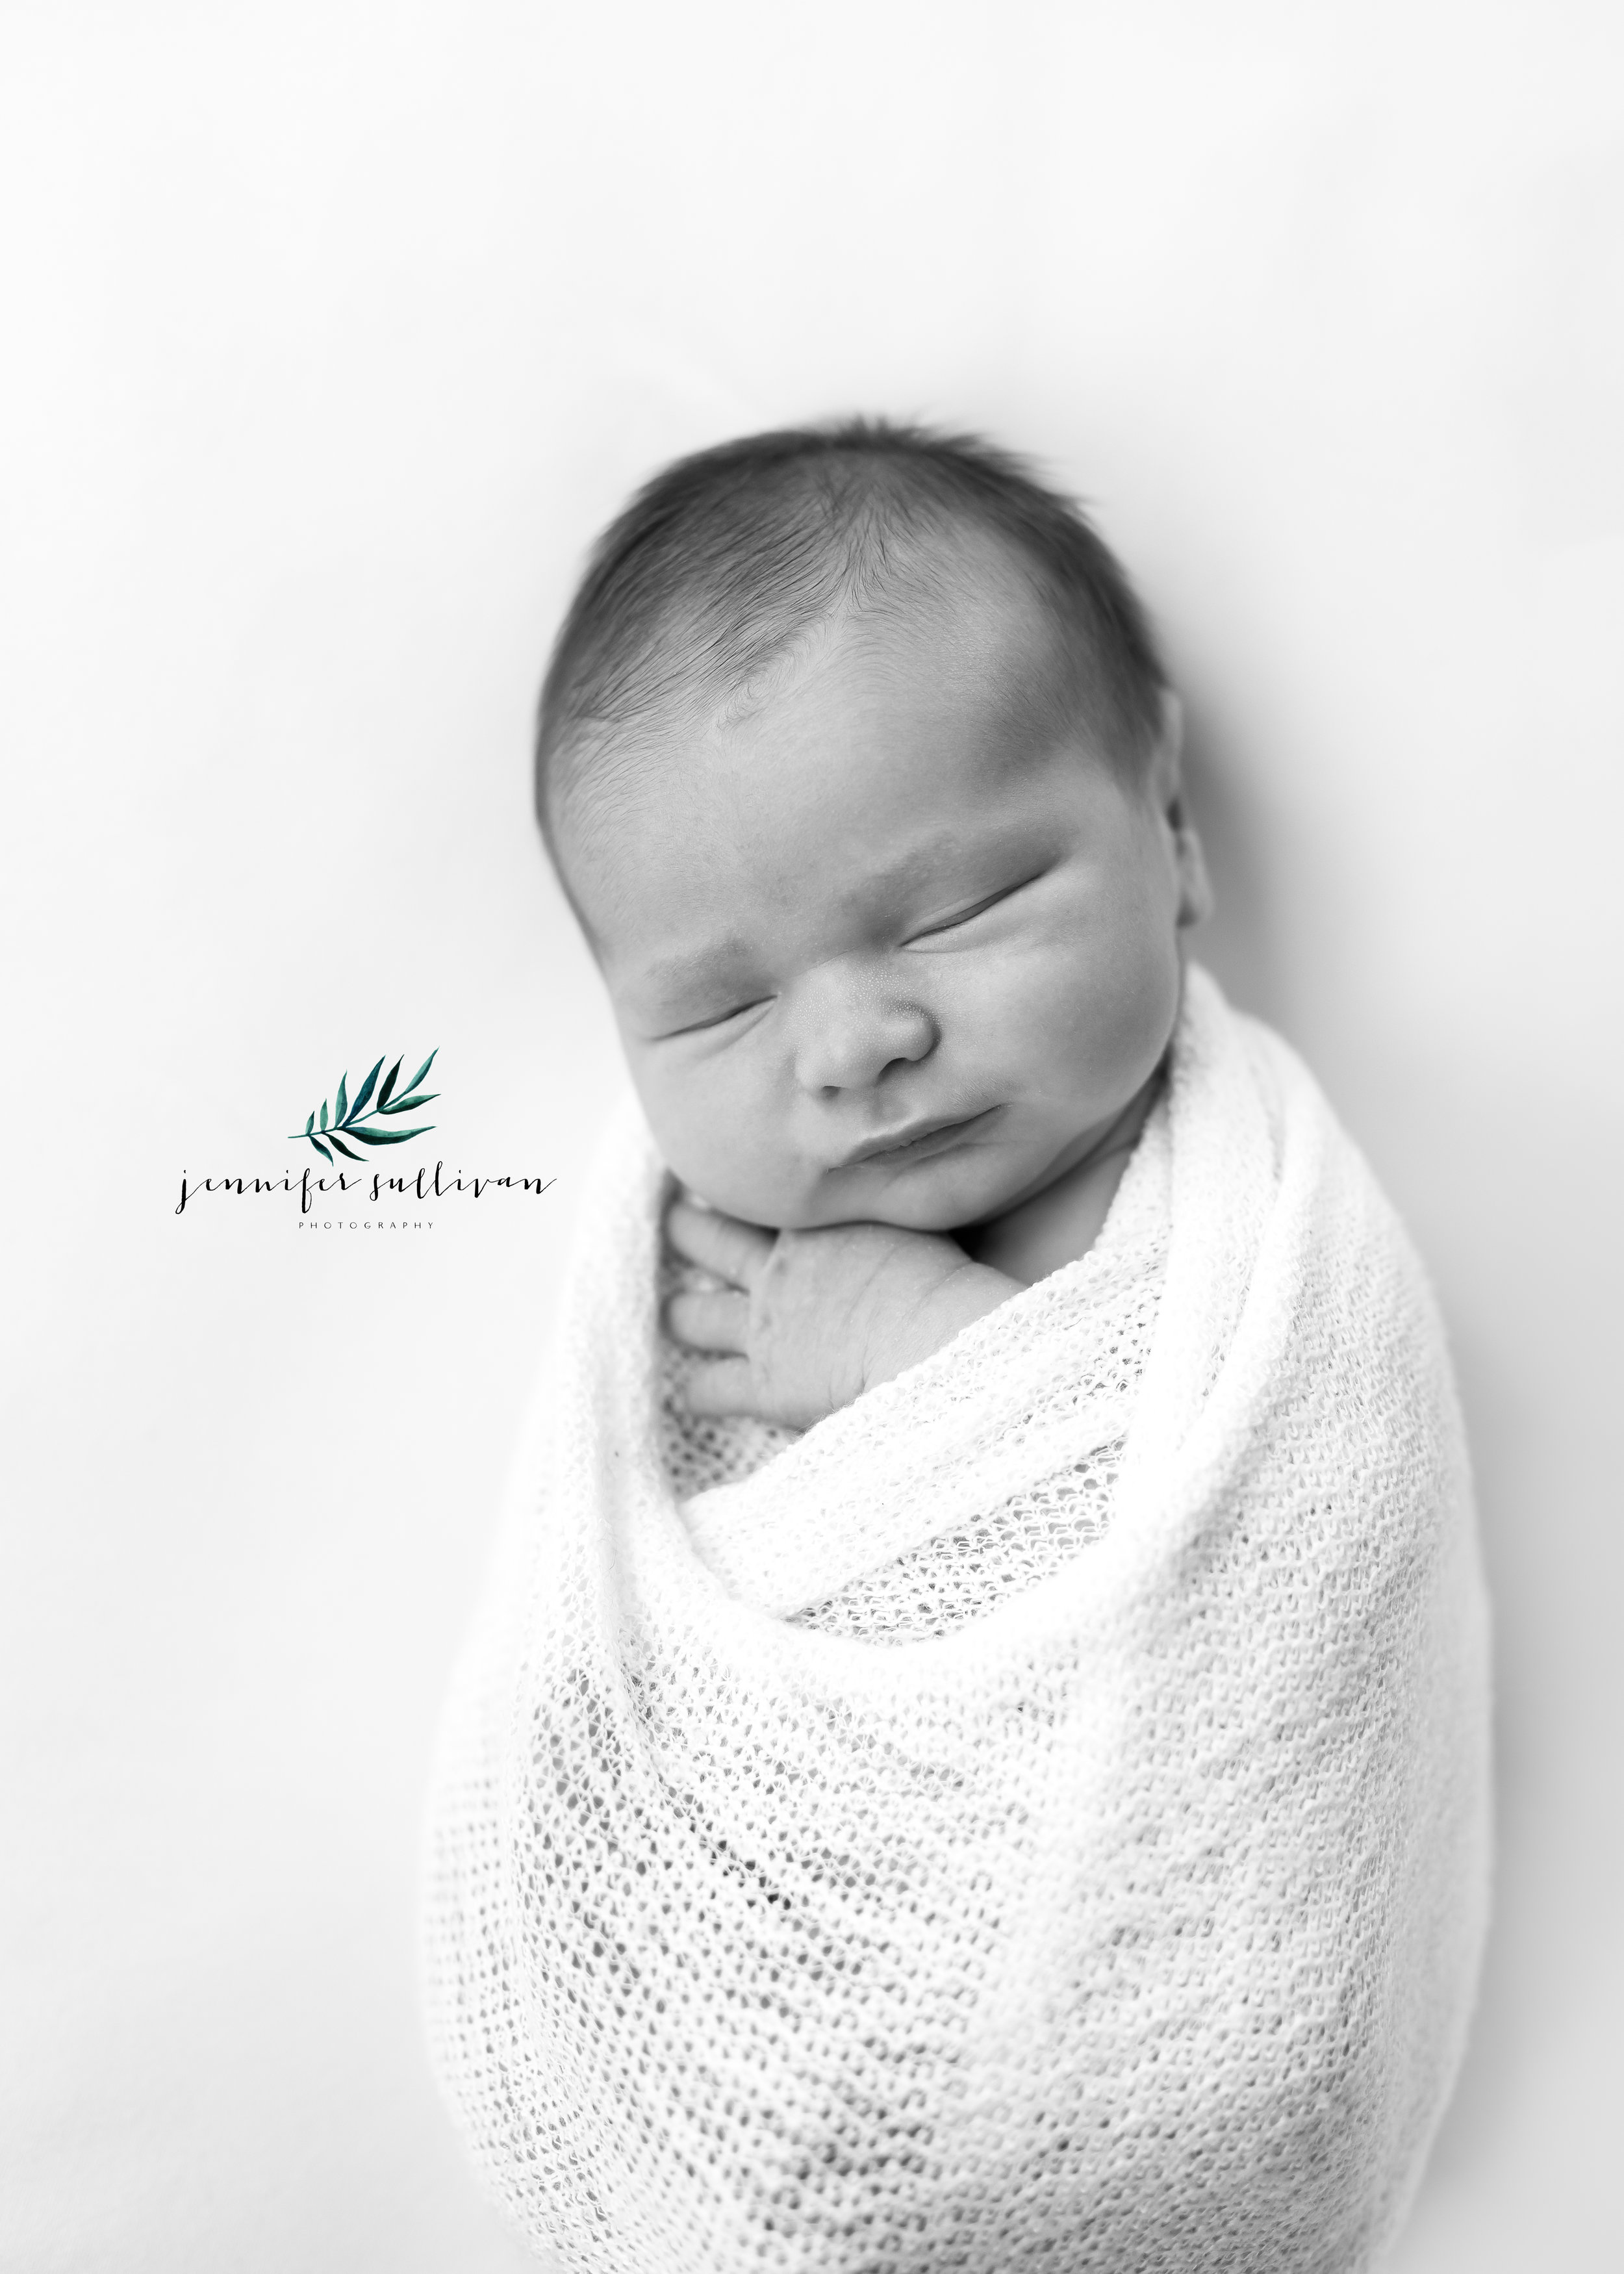 dartmouth massachusetts newborn photographer -400-7.jpg